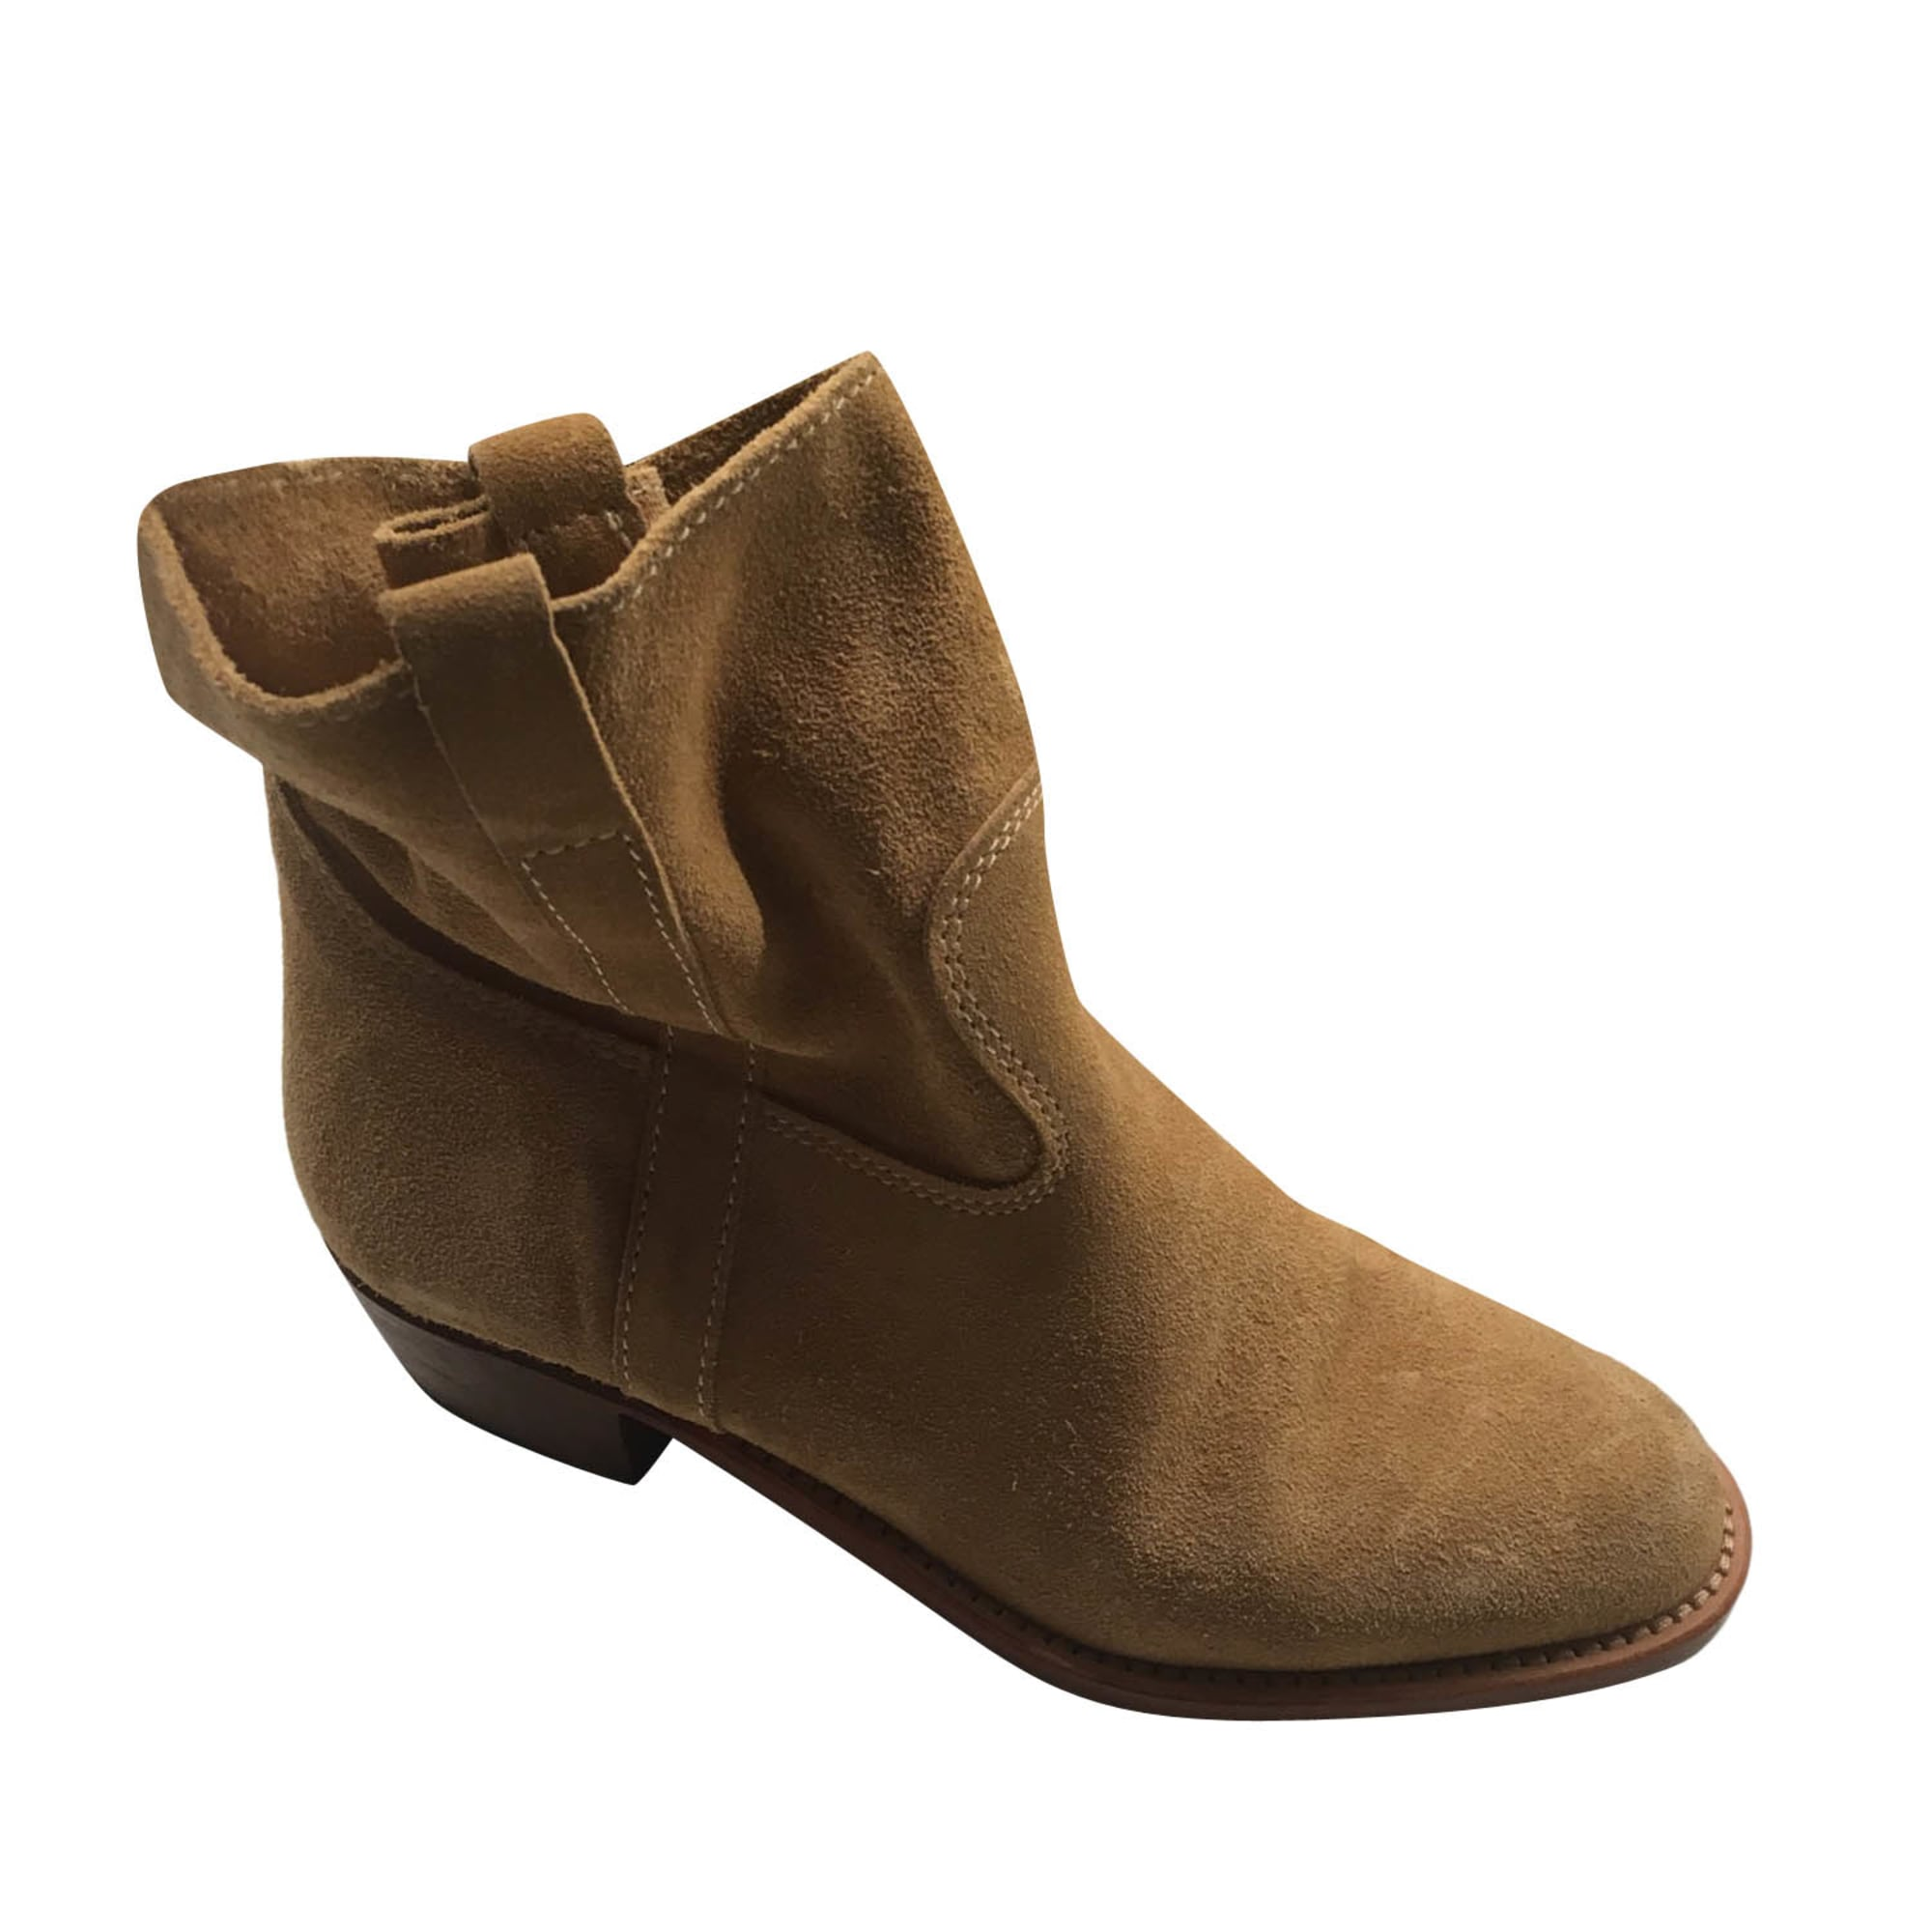 High Heel Ankle Boots JEROME DREYFUSS Beige, camel